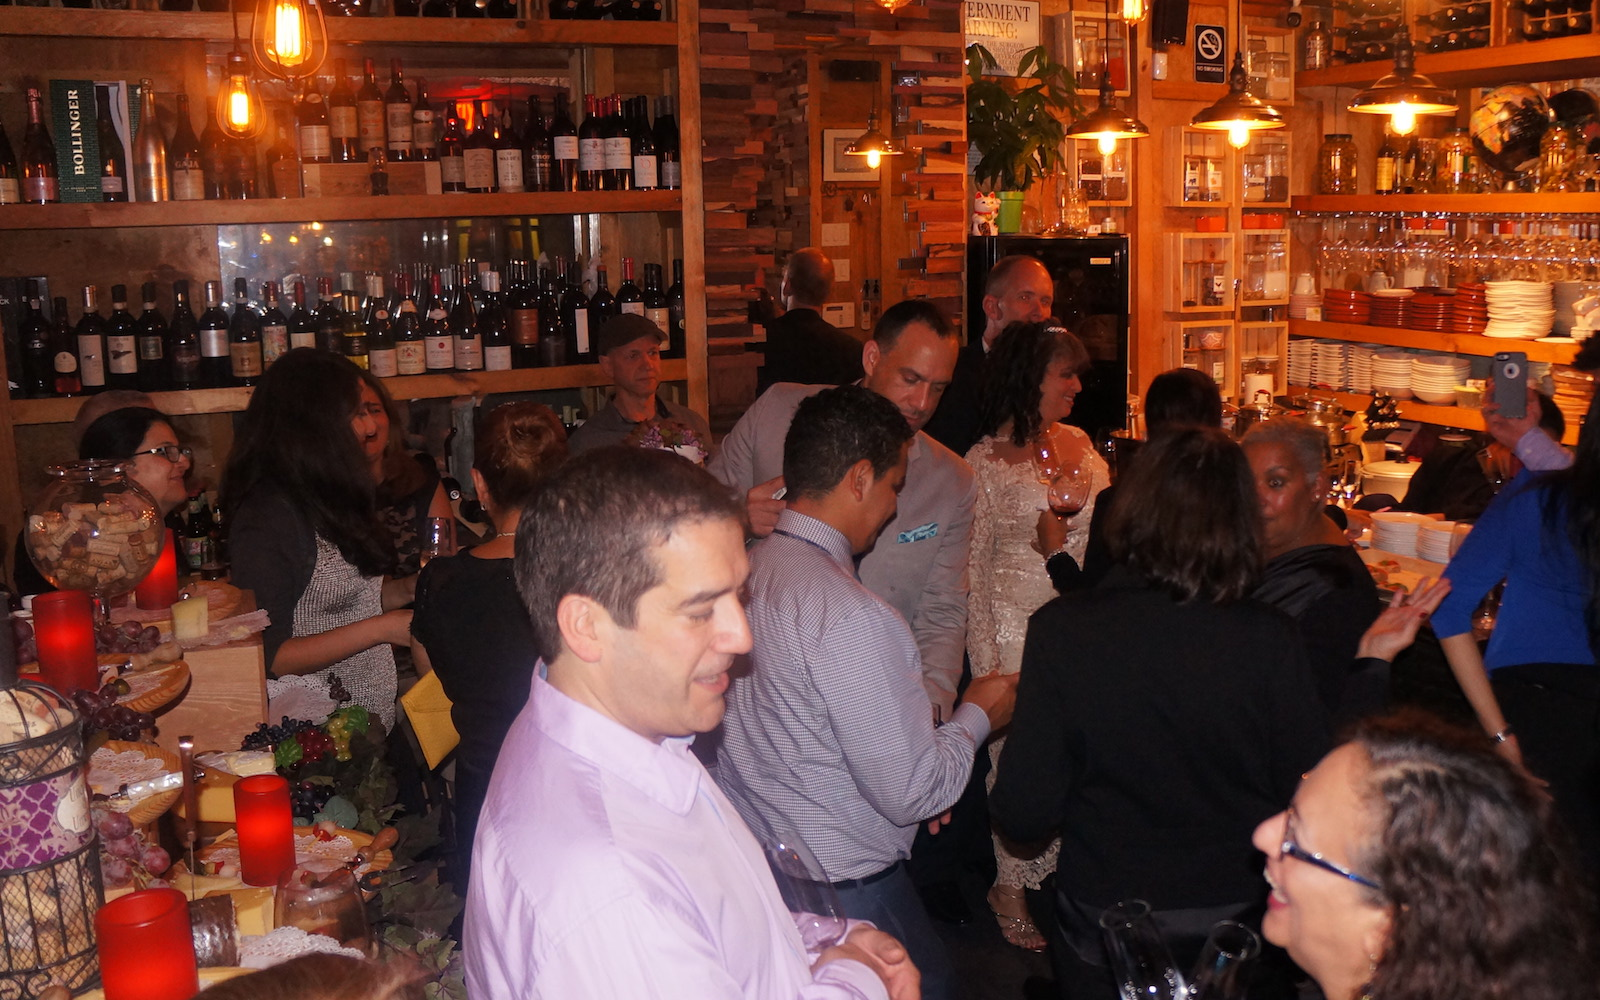 Greg and Lucie Dils host a wedding reception at a wine bar in New York City